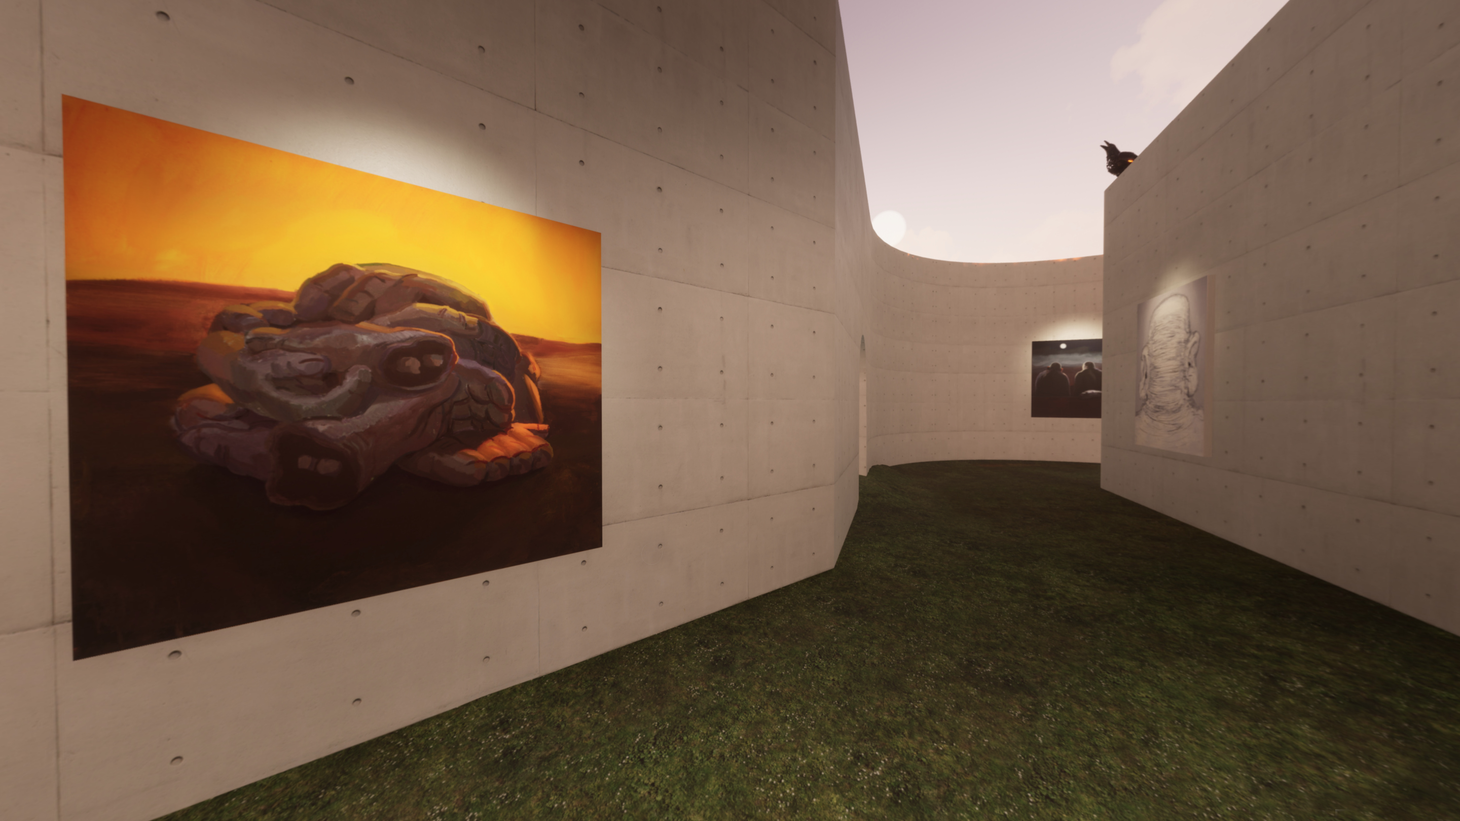 A new exhibit makes the gallery experience feel more like a video game.